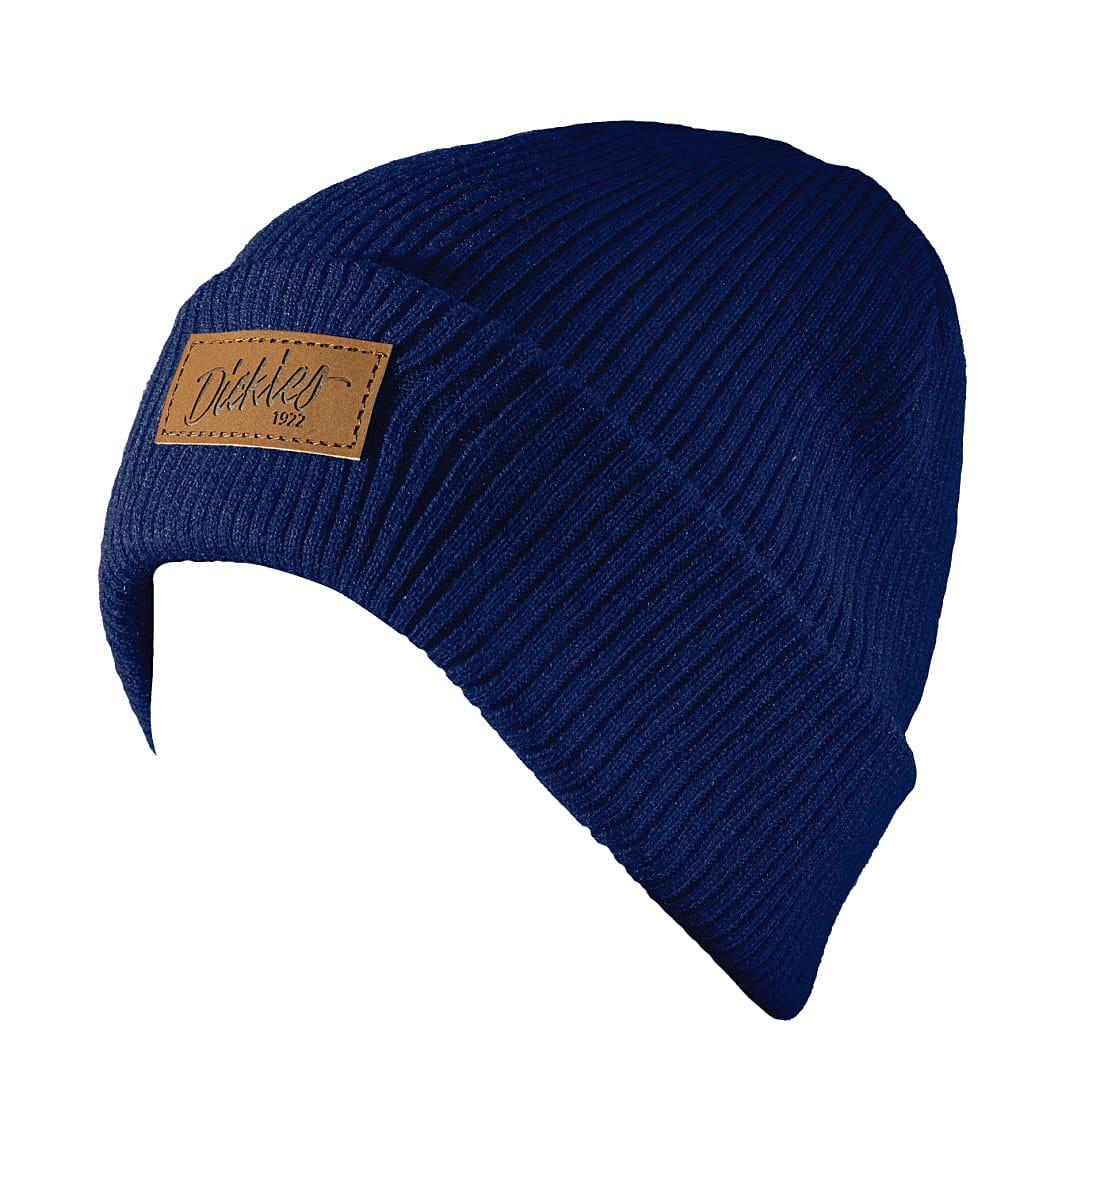 Dickies Evadale Branded Beanie Hat in Navy Blue (Product Code: DT8003)